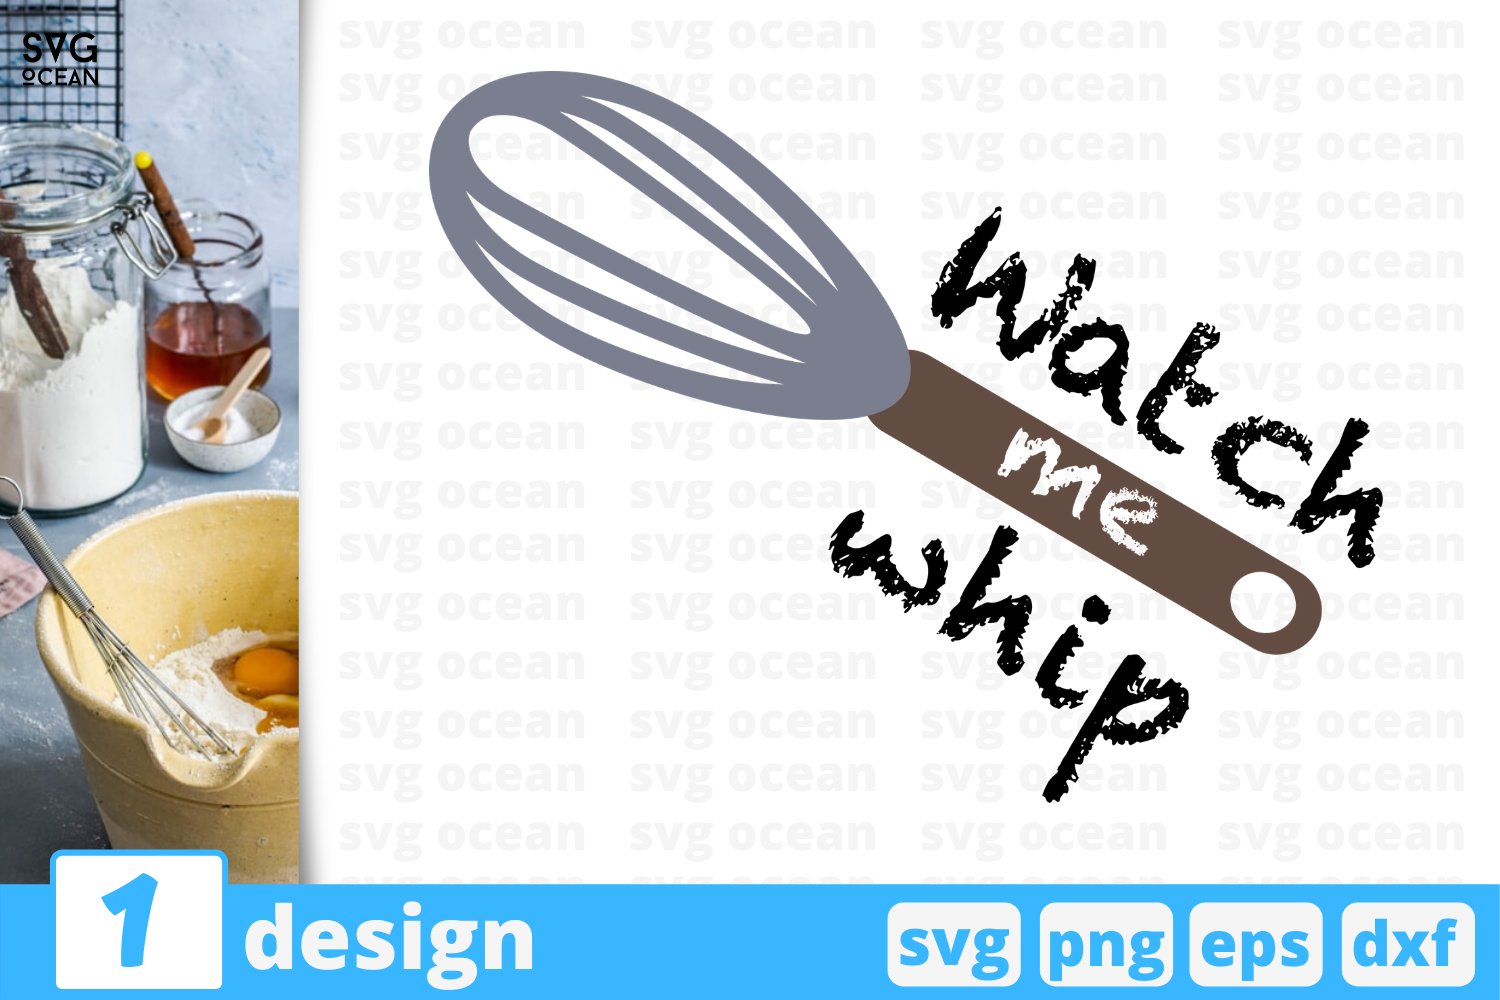 Download Free Watch Me Whip Graphic By Svgocean Creative Fabrica for Cricut Explore, Silhouette and other cutting machines.